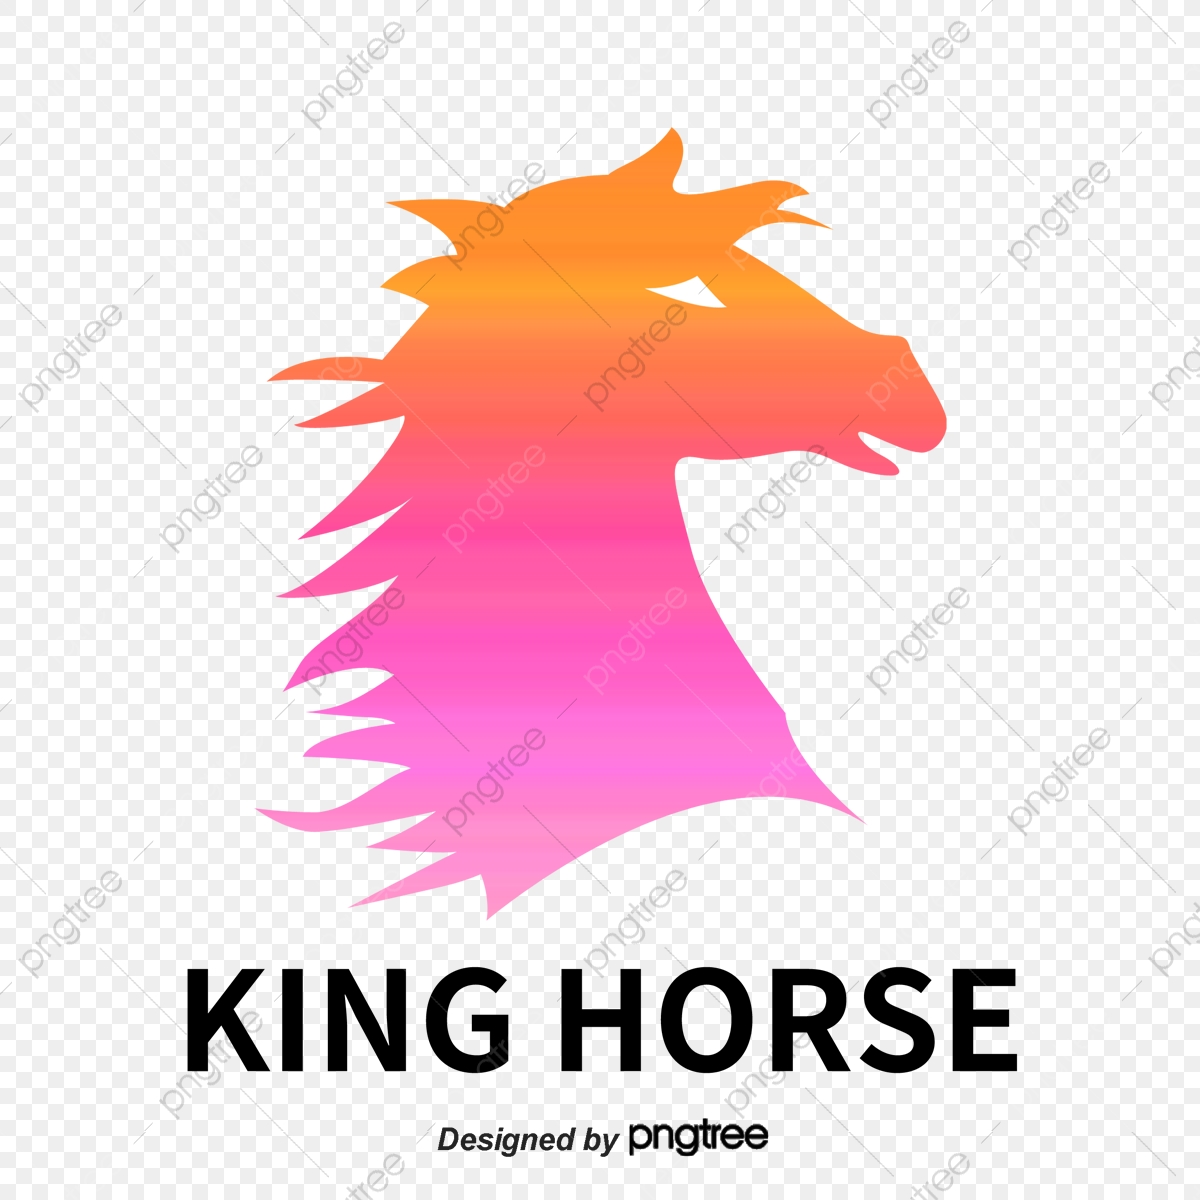 Galloping Horse Logo Mark Steed Gallop Png Transparent Clipart Image And Psd File For Free Download